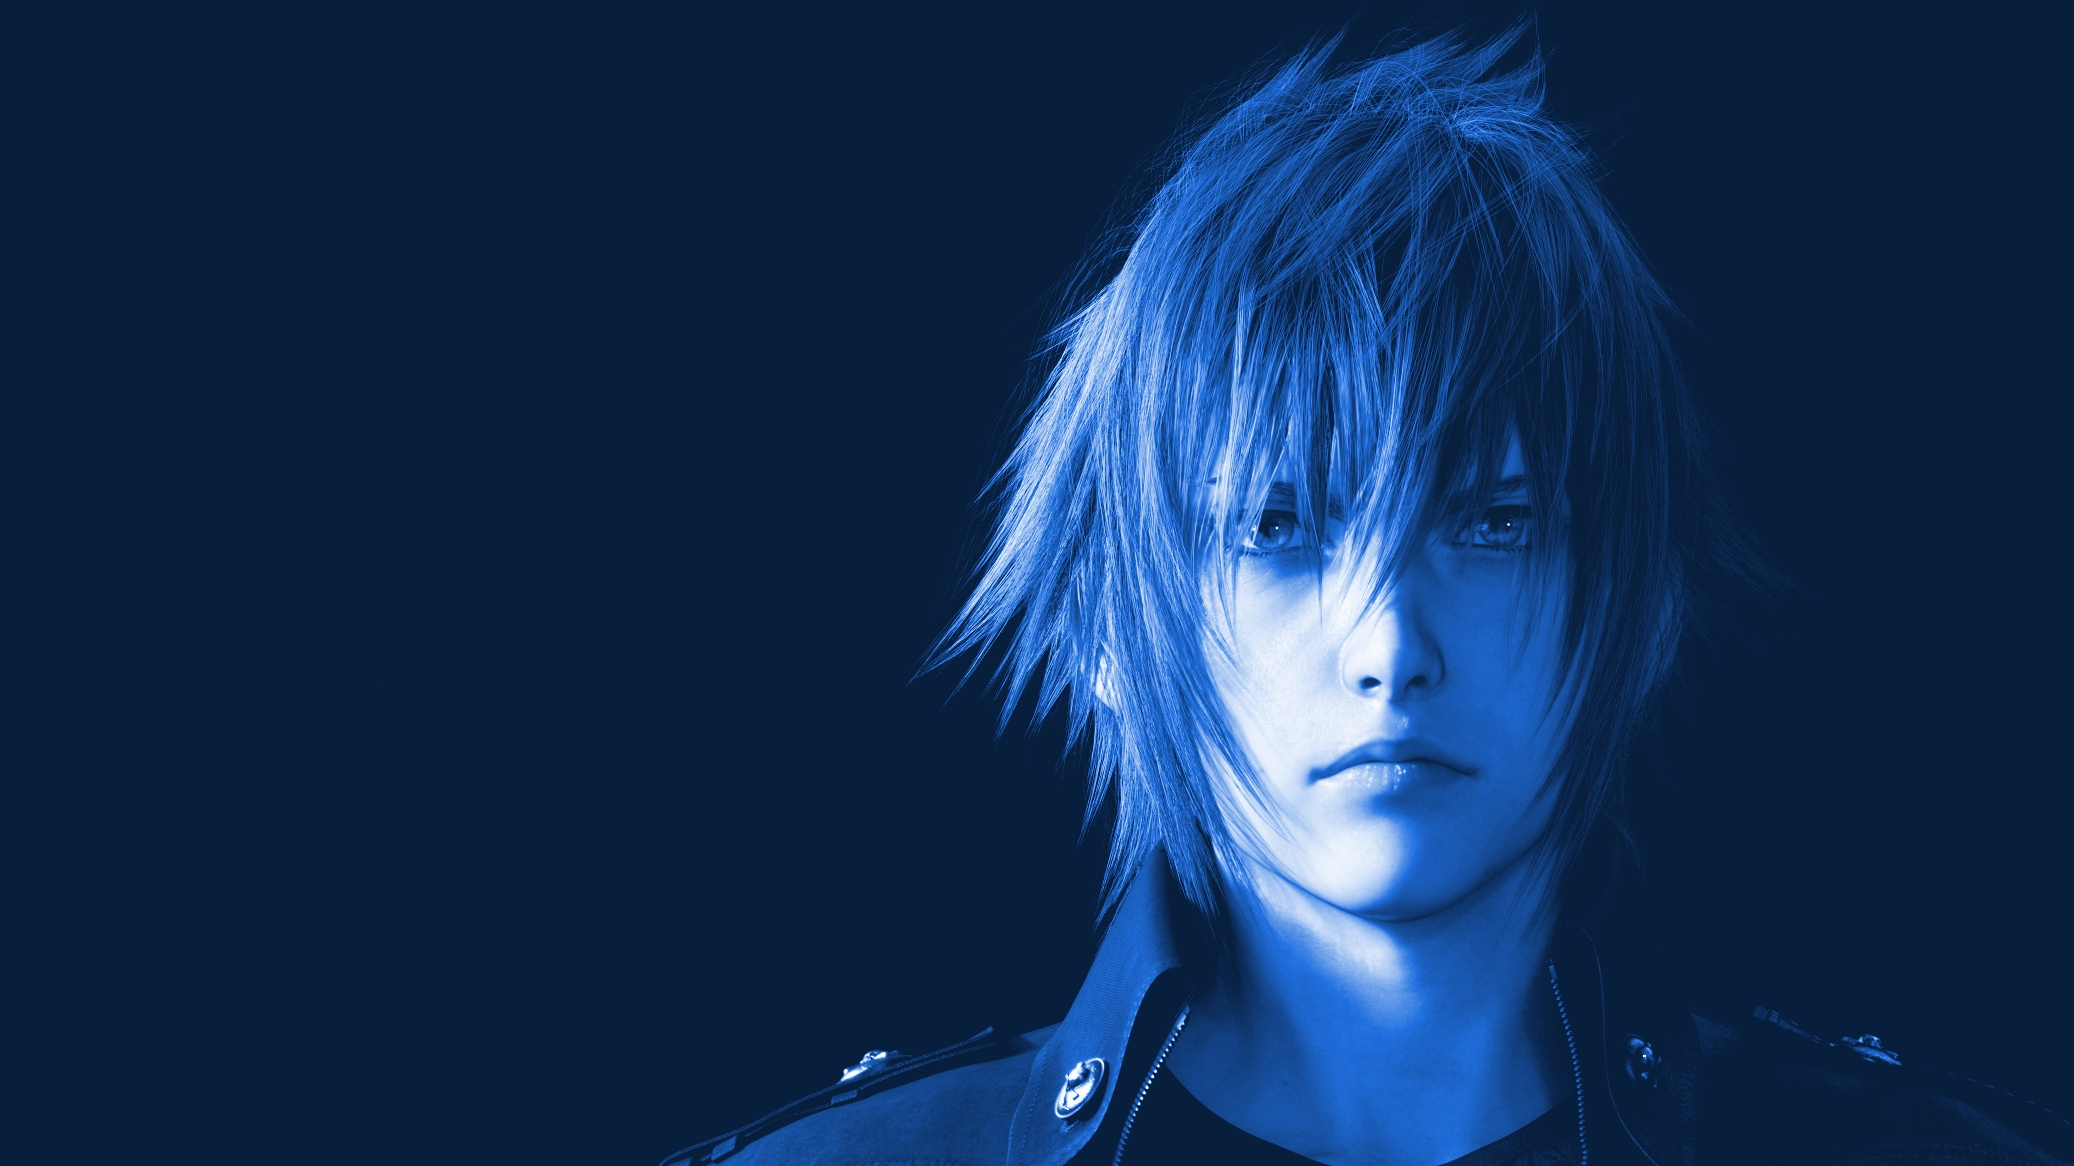 Final Fantasy 15 Luna Wallpapers Is Cool Wallpapers